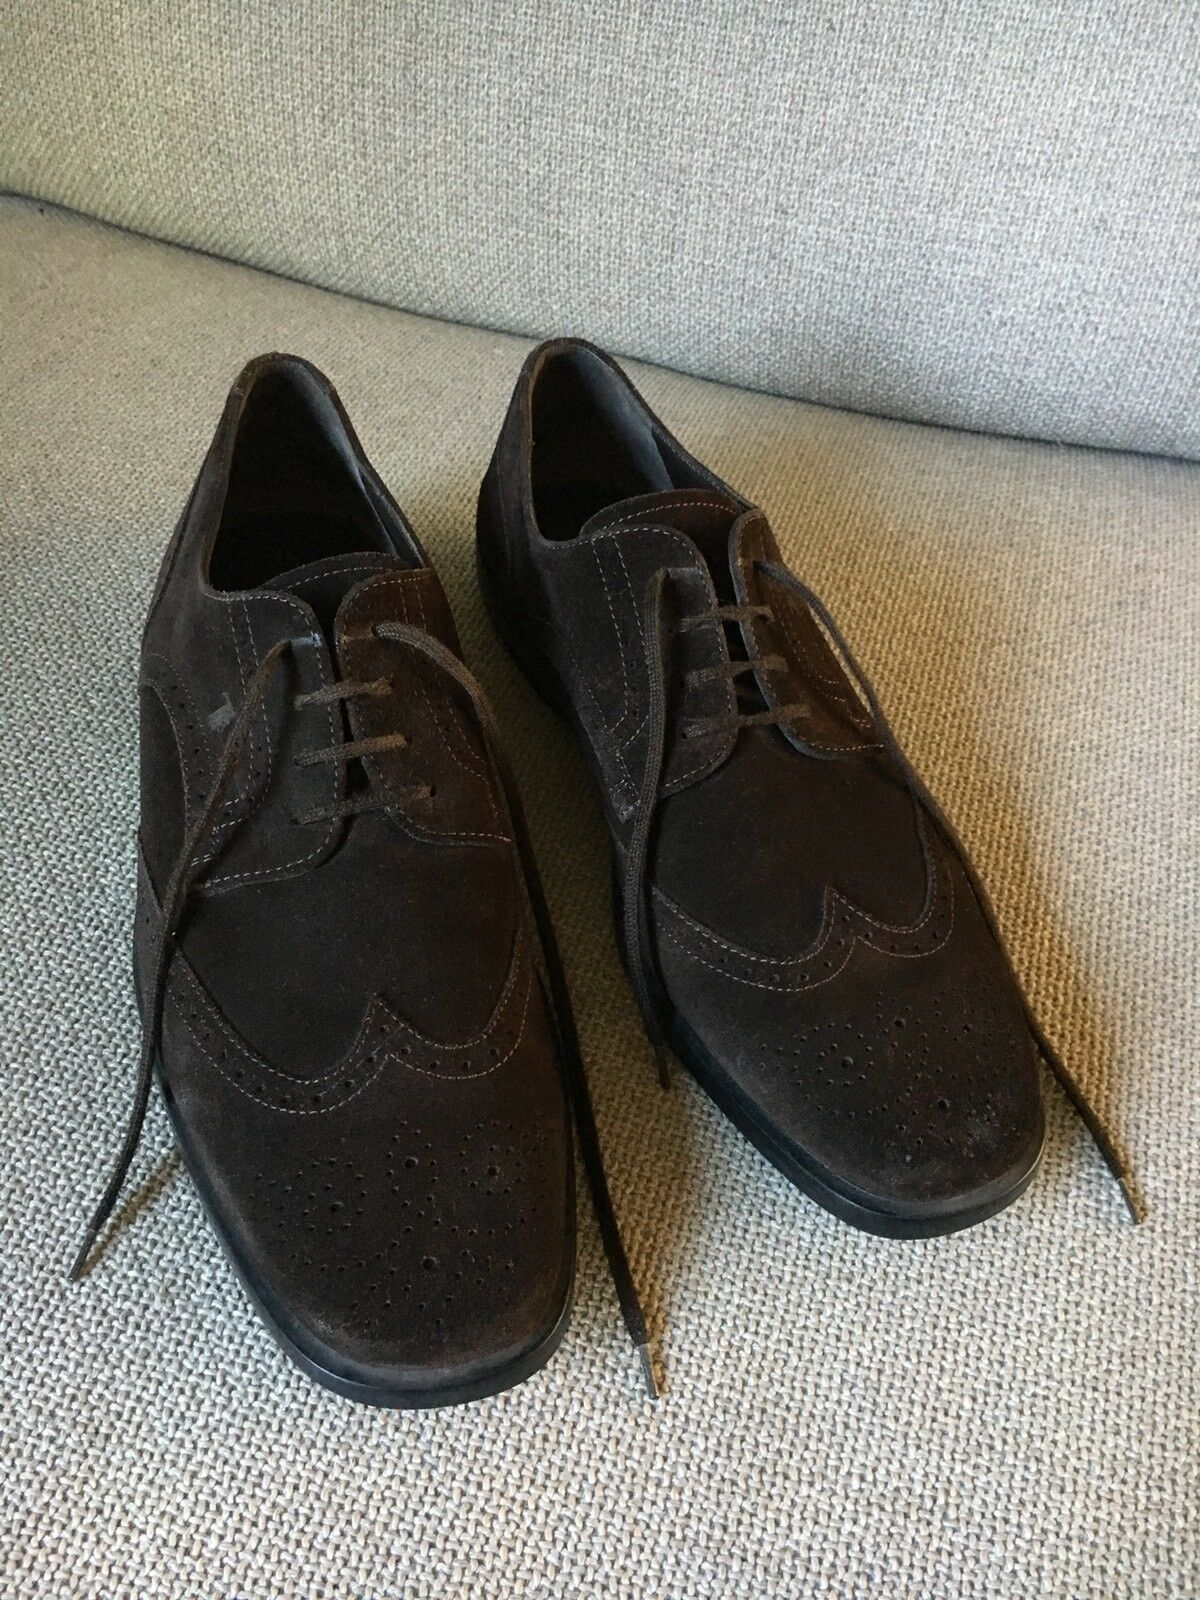 Tods Brown Suede shoes Size 10